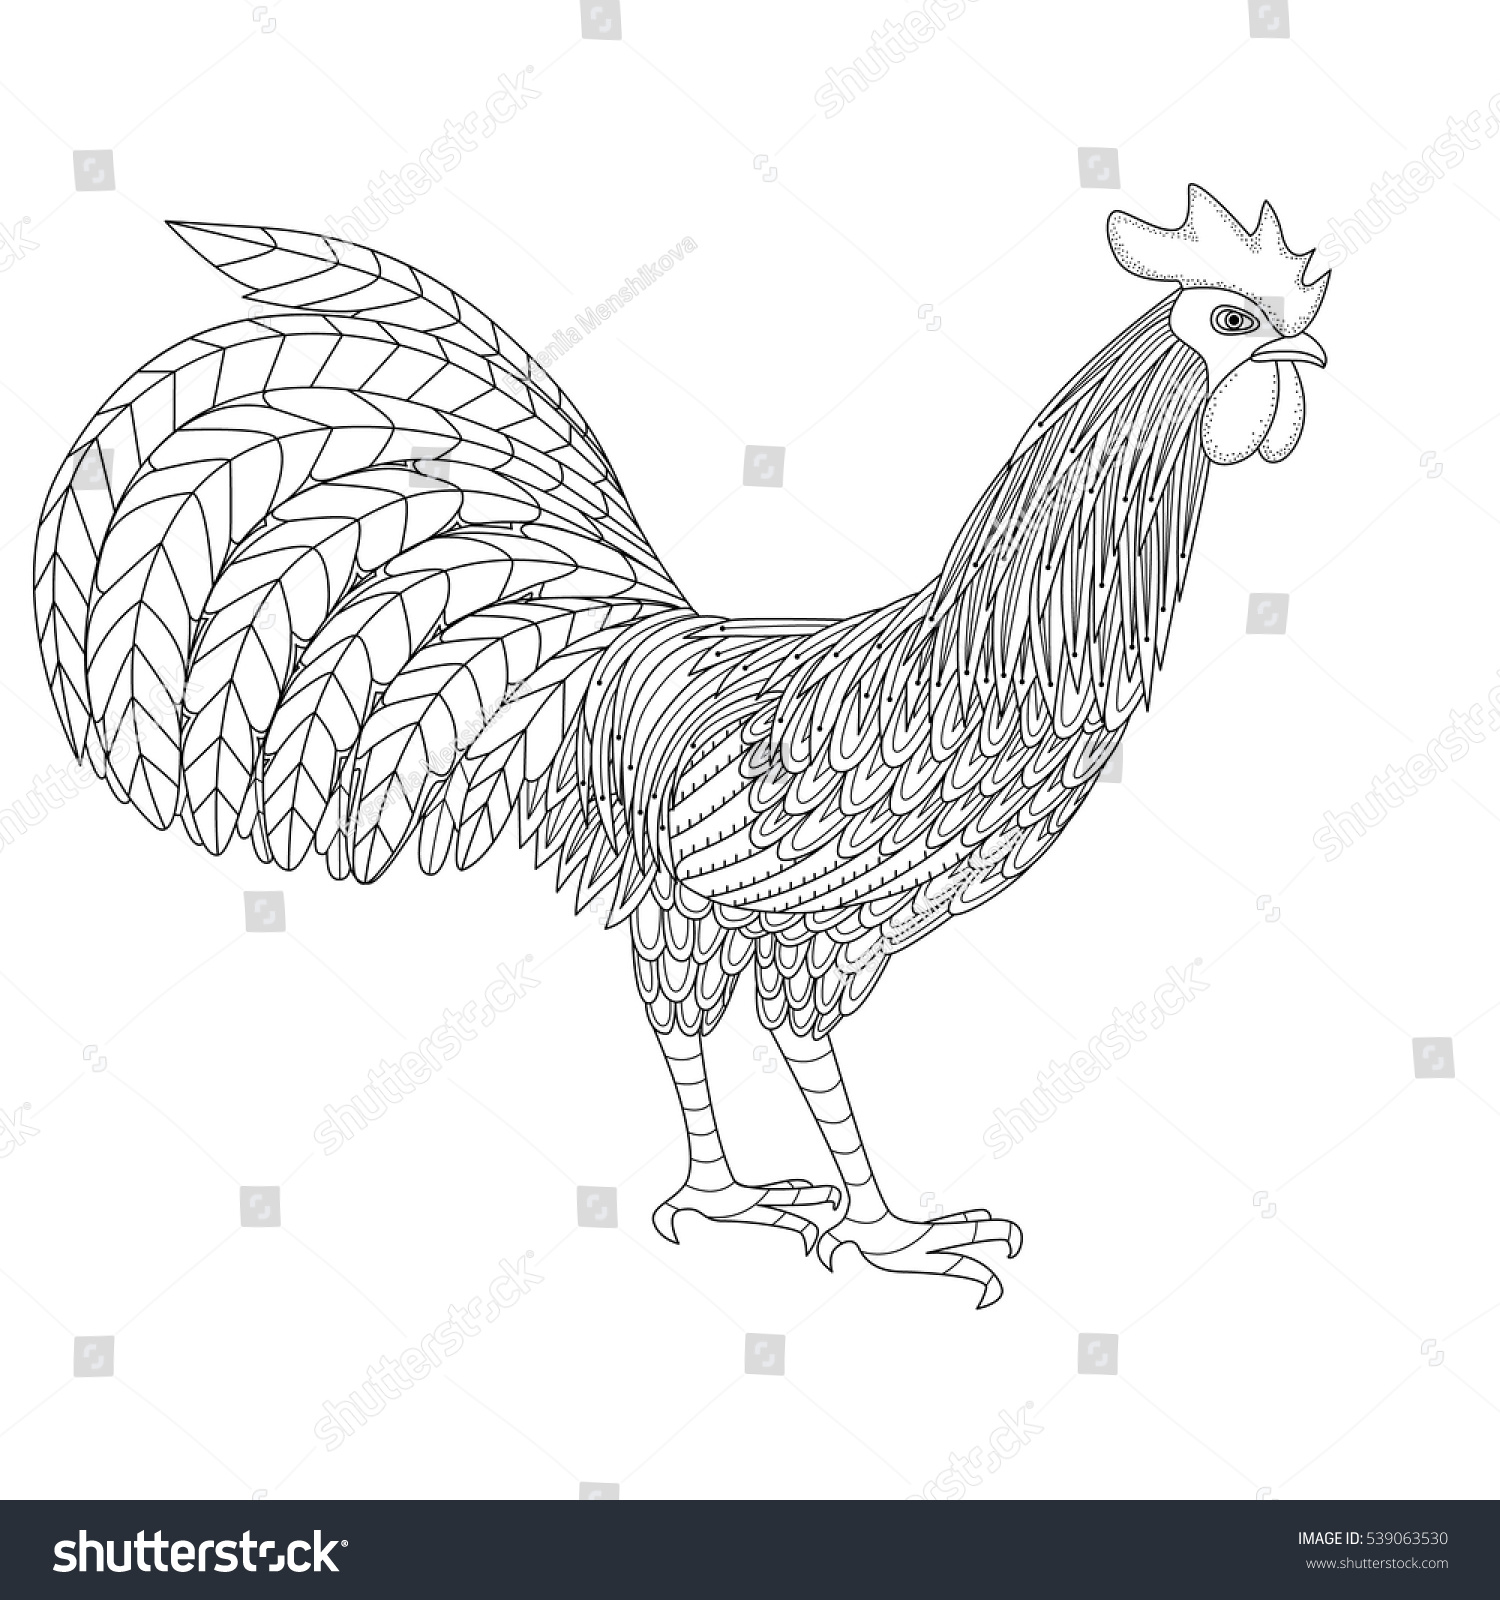 Colouring sheets chinese new year 2017 - Vector Illustration Of Rooster Symbol Of Chinese New Year 2017 Zentangle Stylization Background Coloring Page Print Tattoo Design Stock Vector